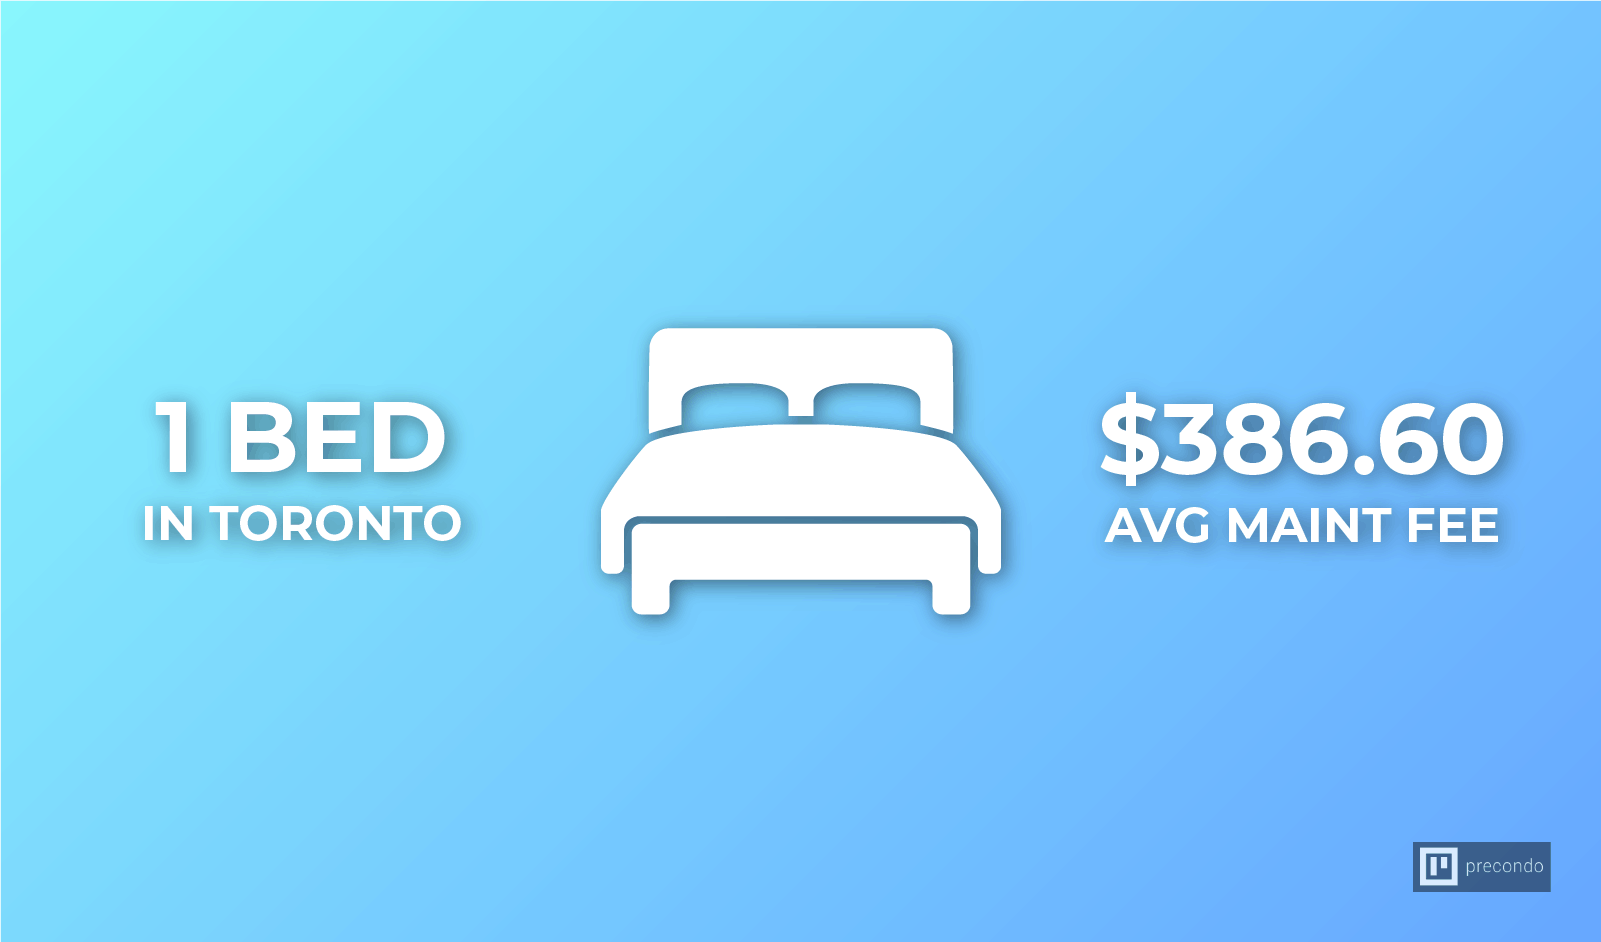 Precondo - Blog Post - How Much Are the Condo Fees in Toronto? 4 Factors That Make It High